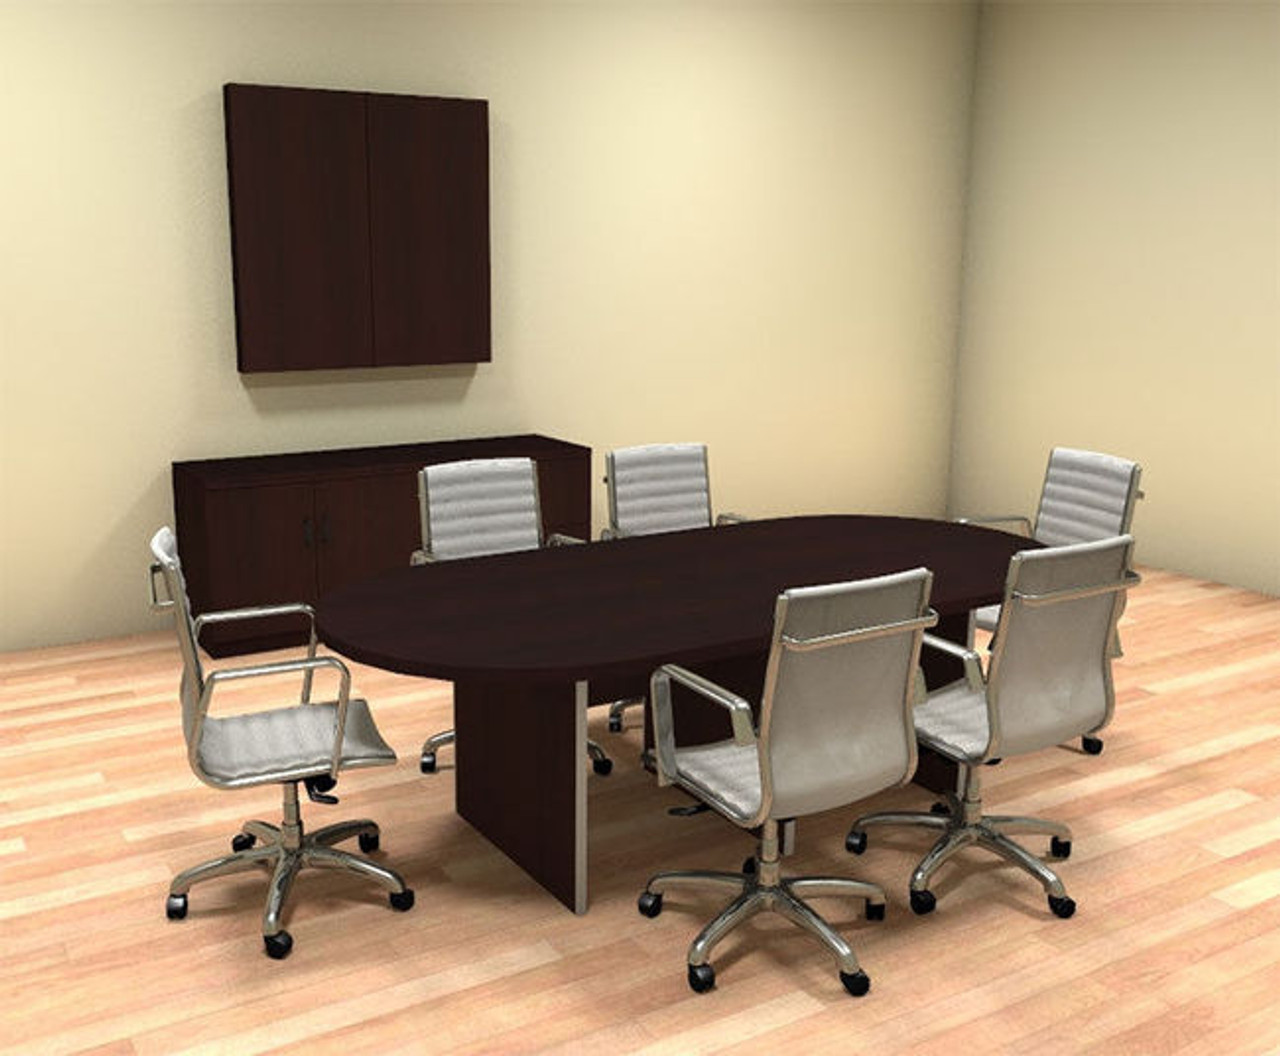 Modern Racetrack 8' Feet Conference Table, #CH-AMB-C33